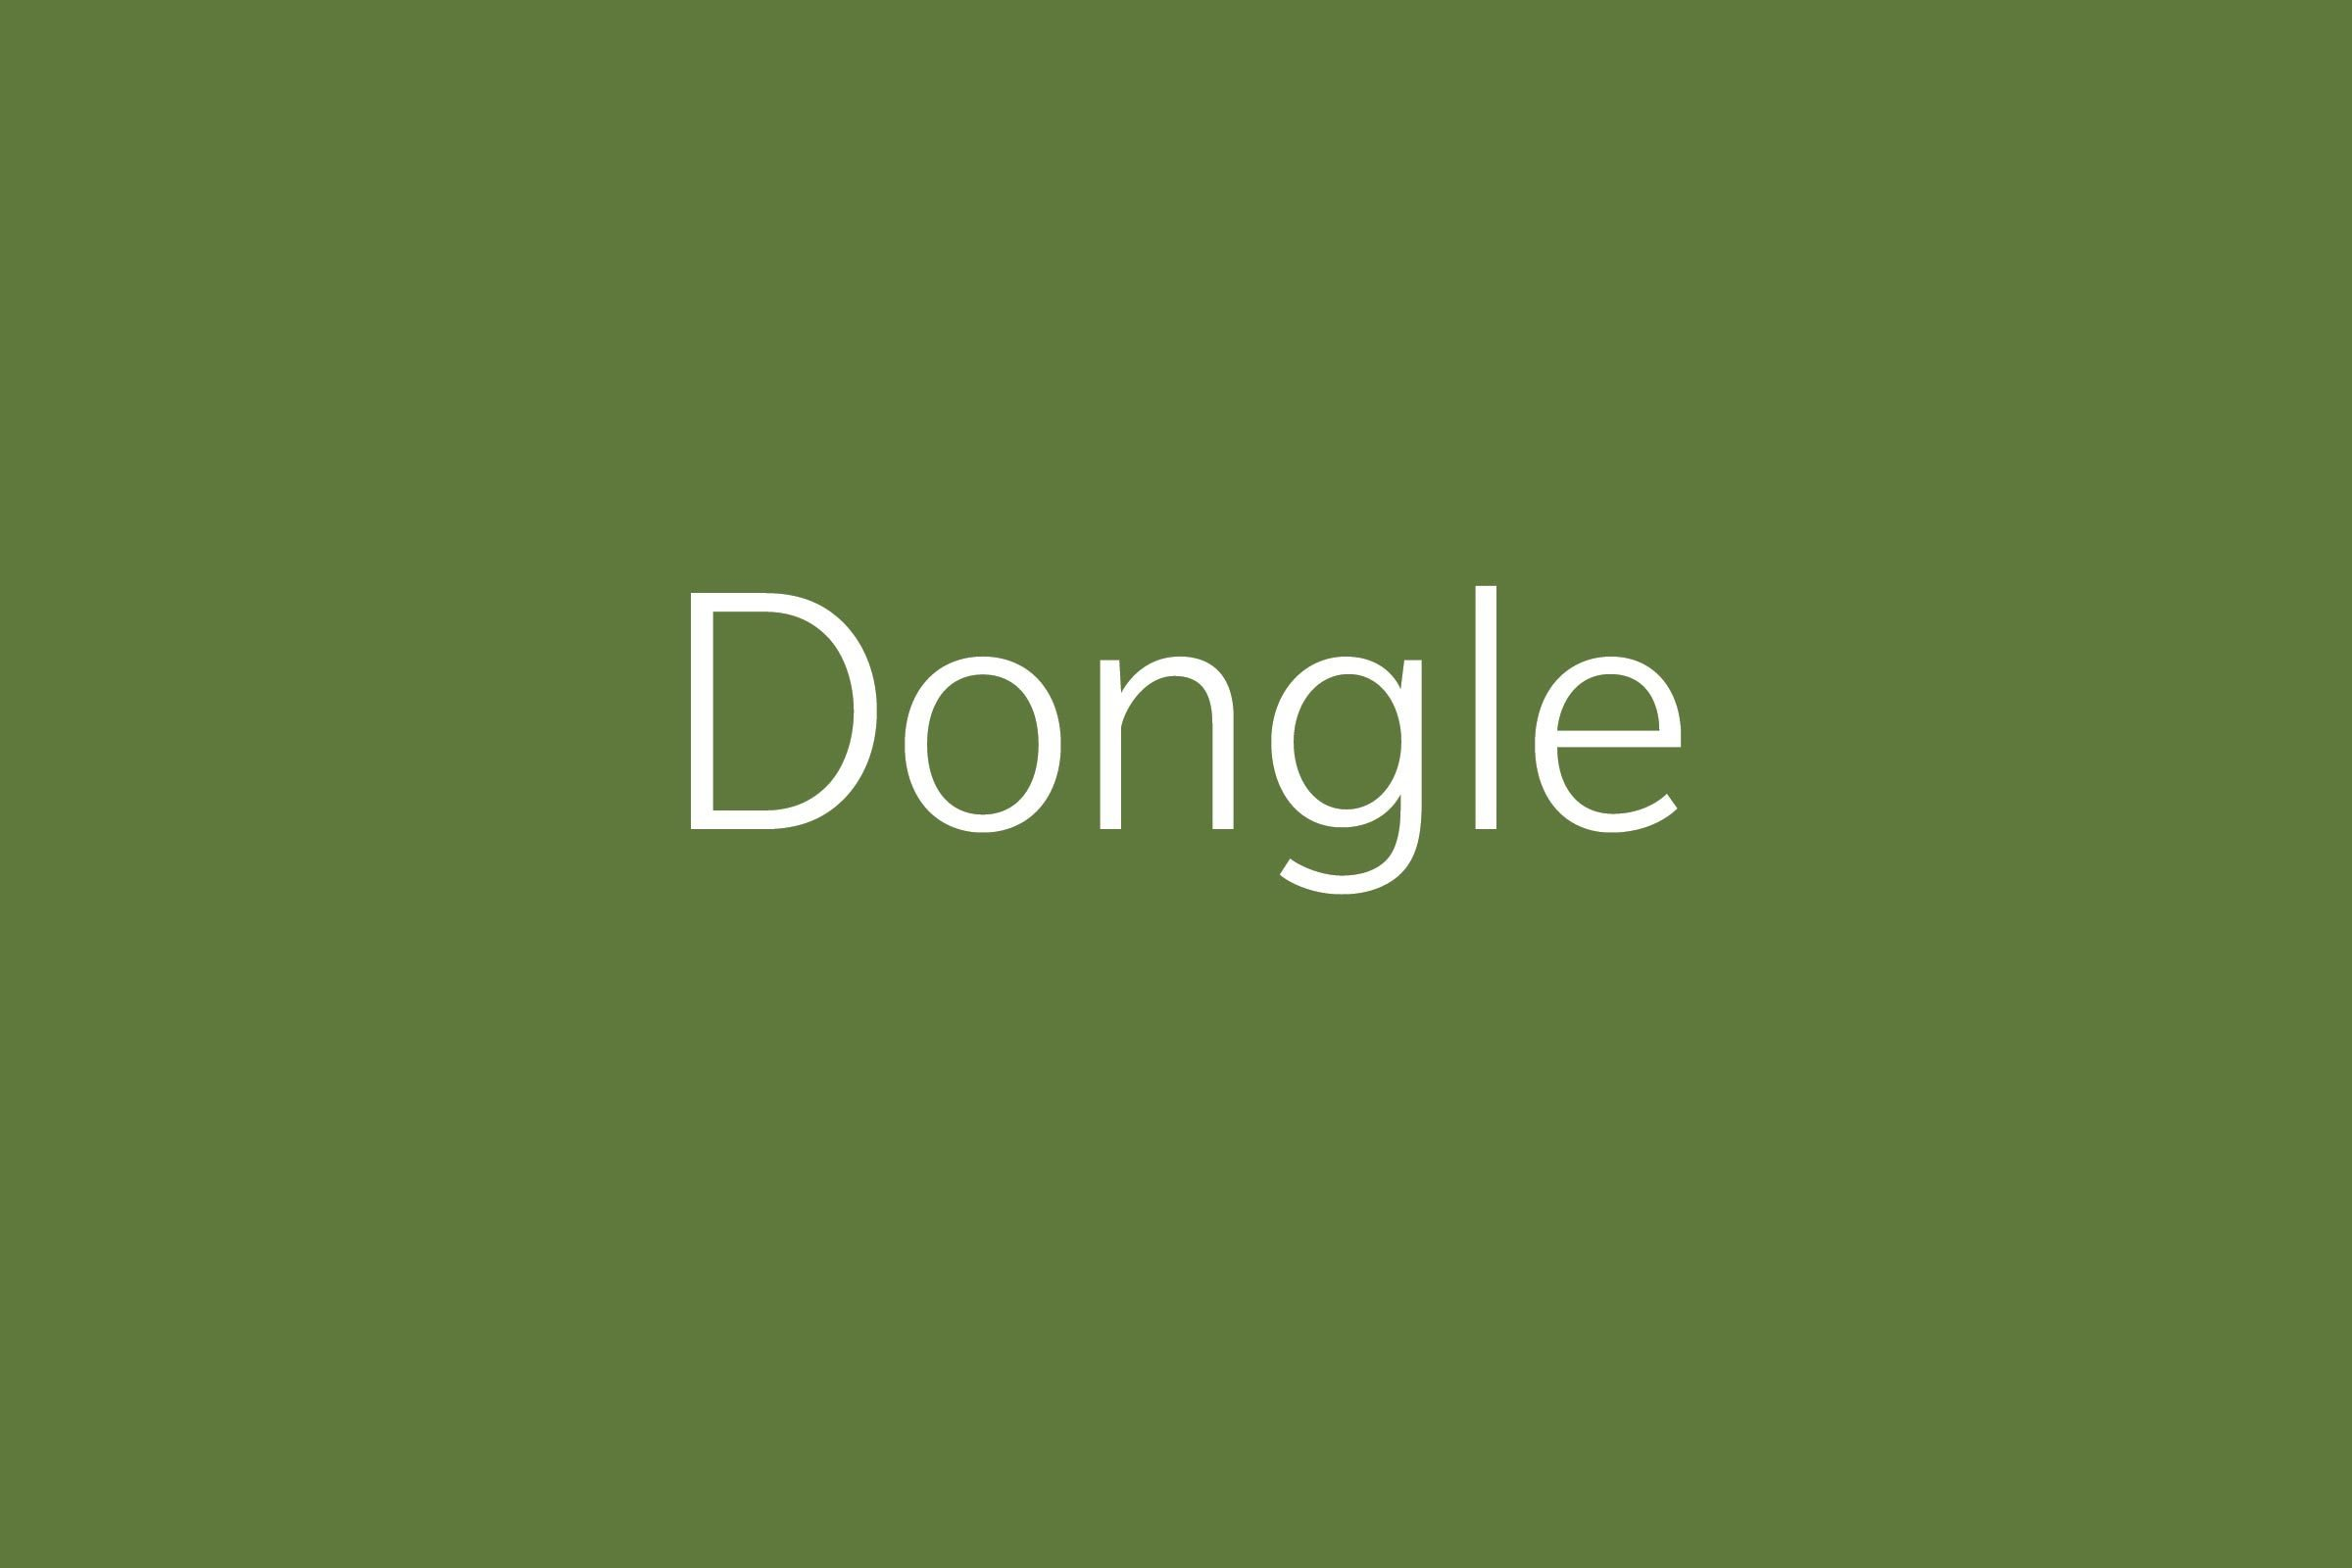 dongle funny word Funny words